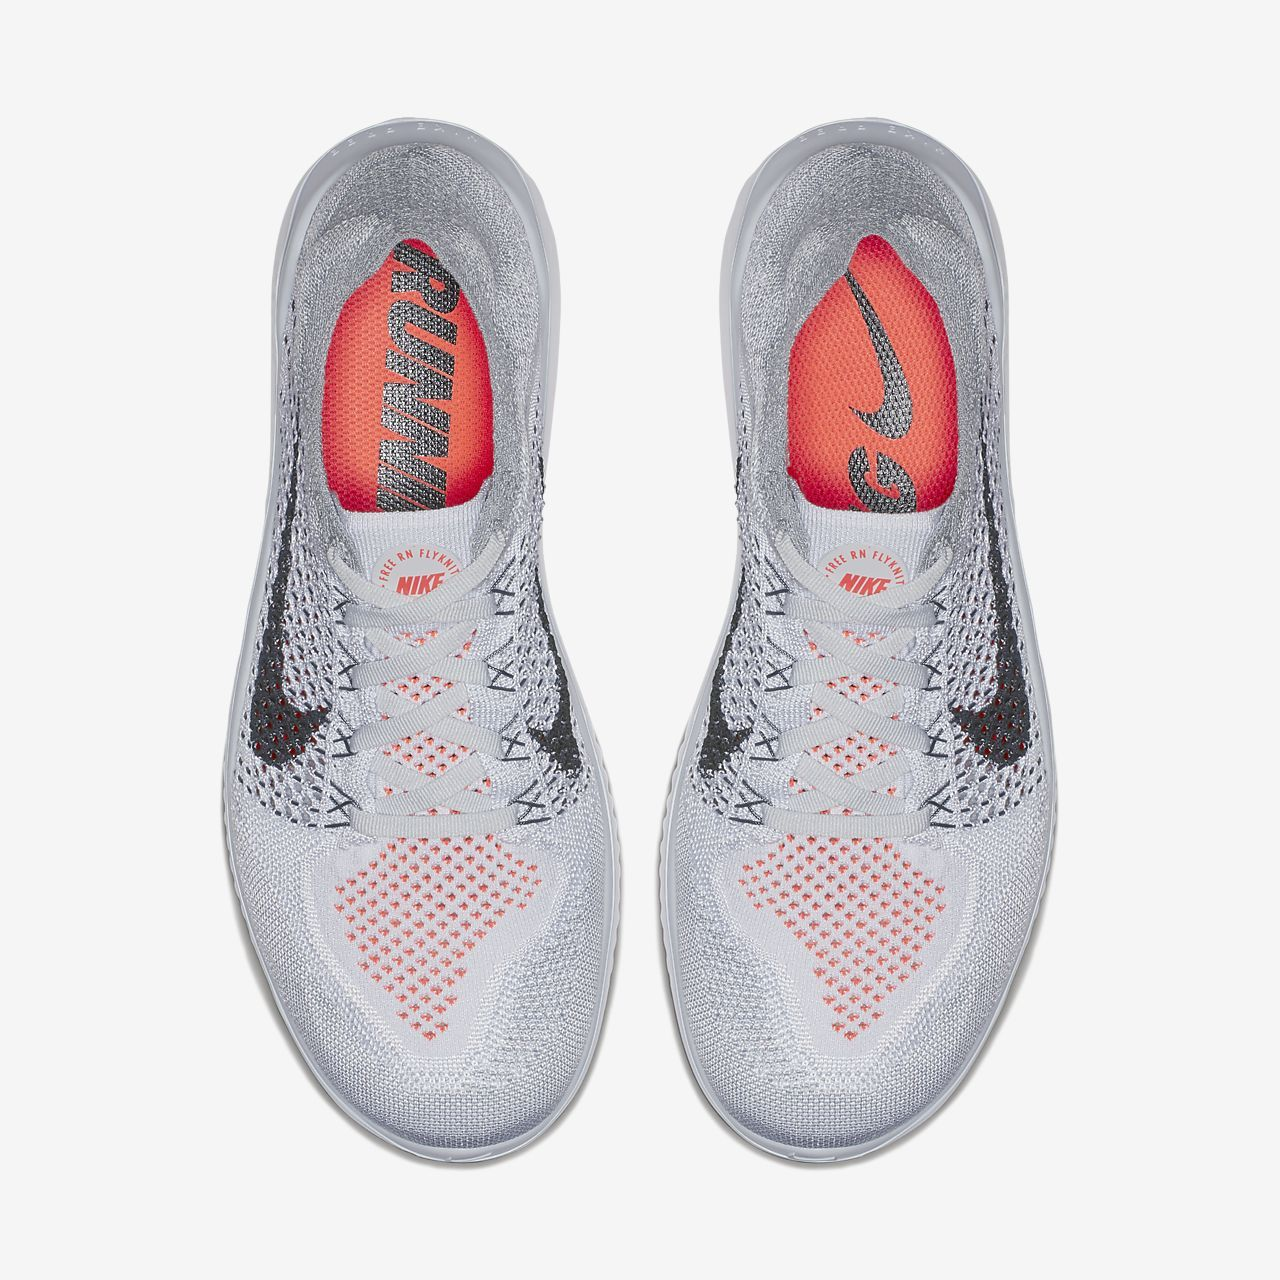 Nike Men's Free Rn Flyknit 2018 Competition Running Shoes